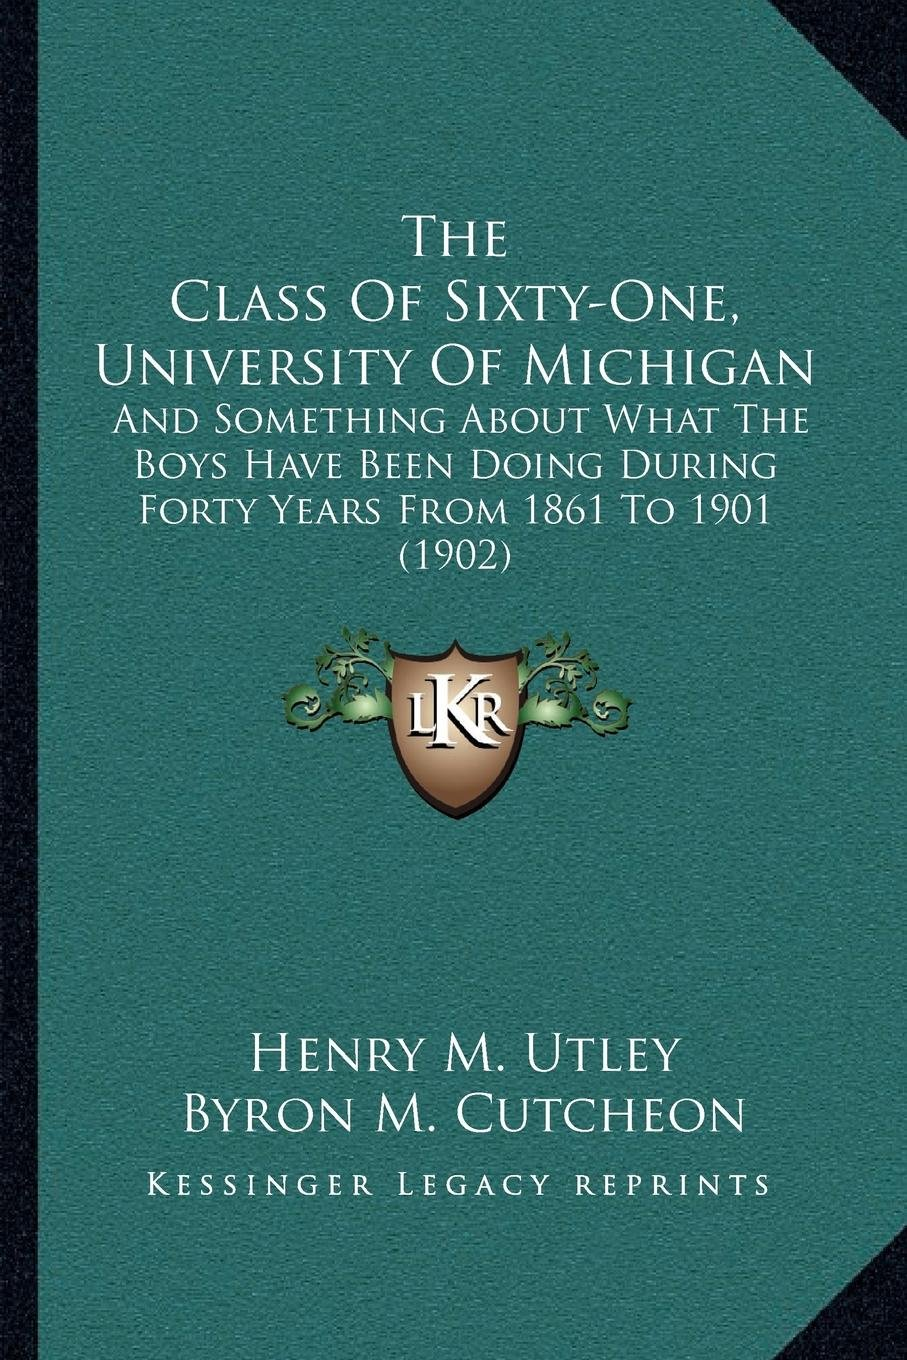 Download The Class Of Sixty-One, University Of Michigan: And Something About What The Boys Have Been Doing During Forty Years From 1861 To 1901 (1902) ebook